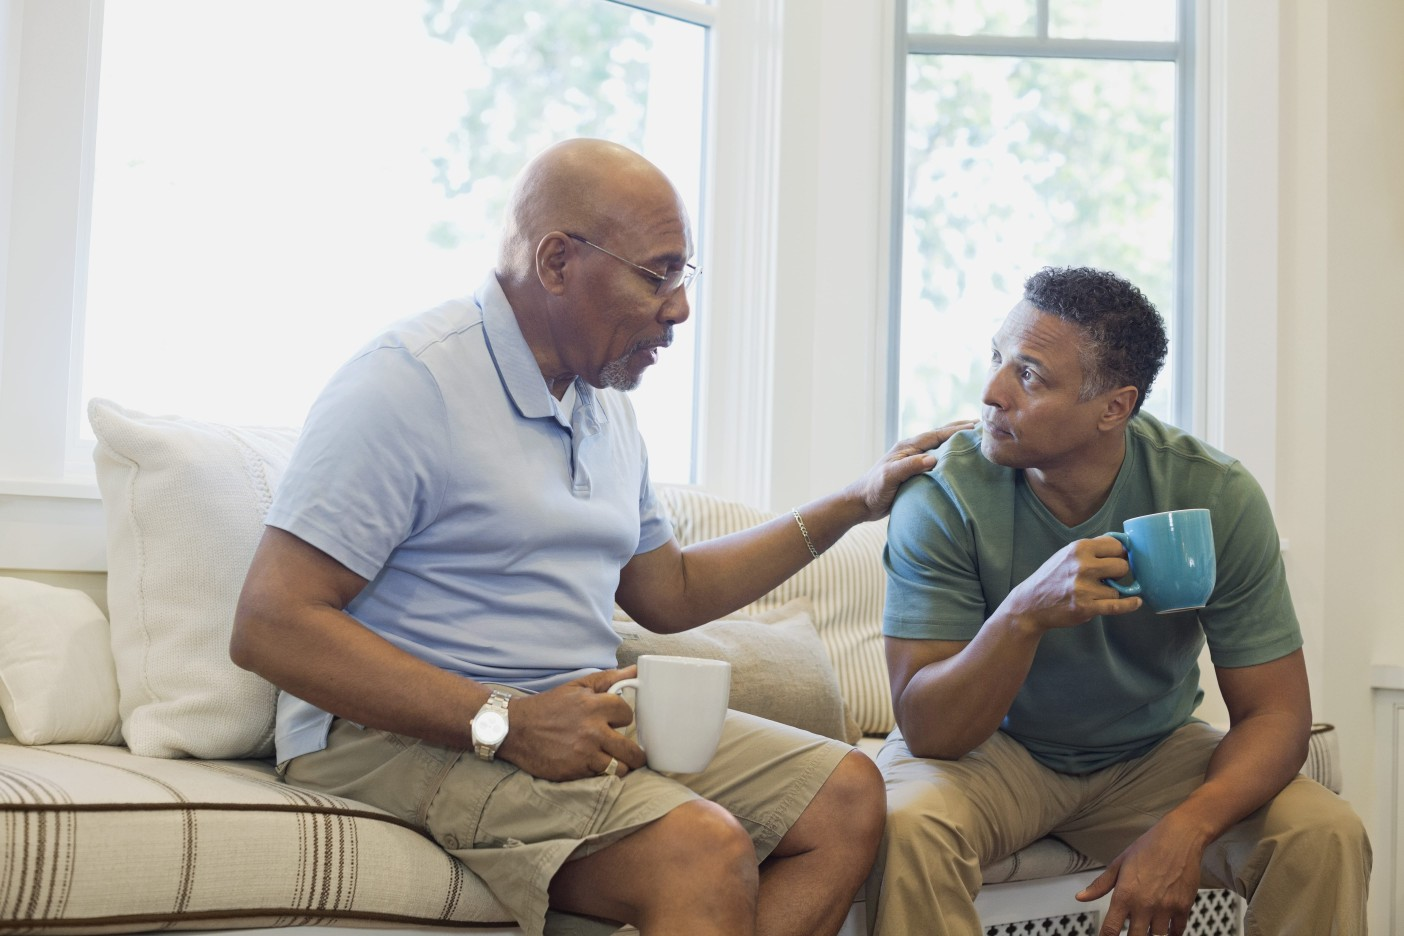 Two men discuss the cancer support groups available at Florida Hospital Cancer Institute in a well lit living room